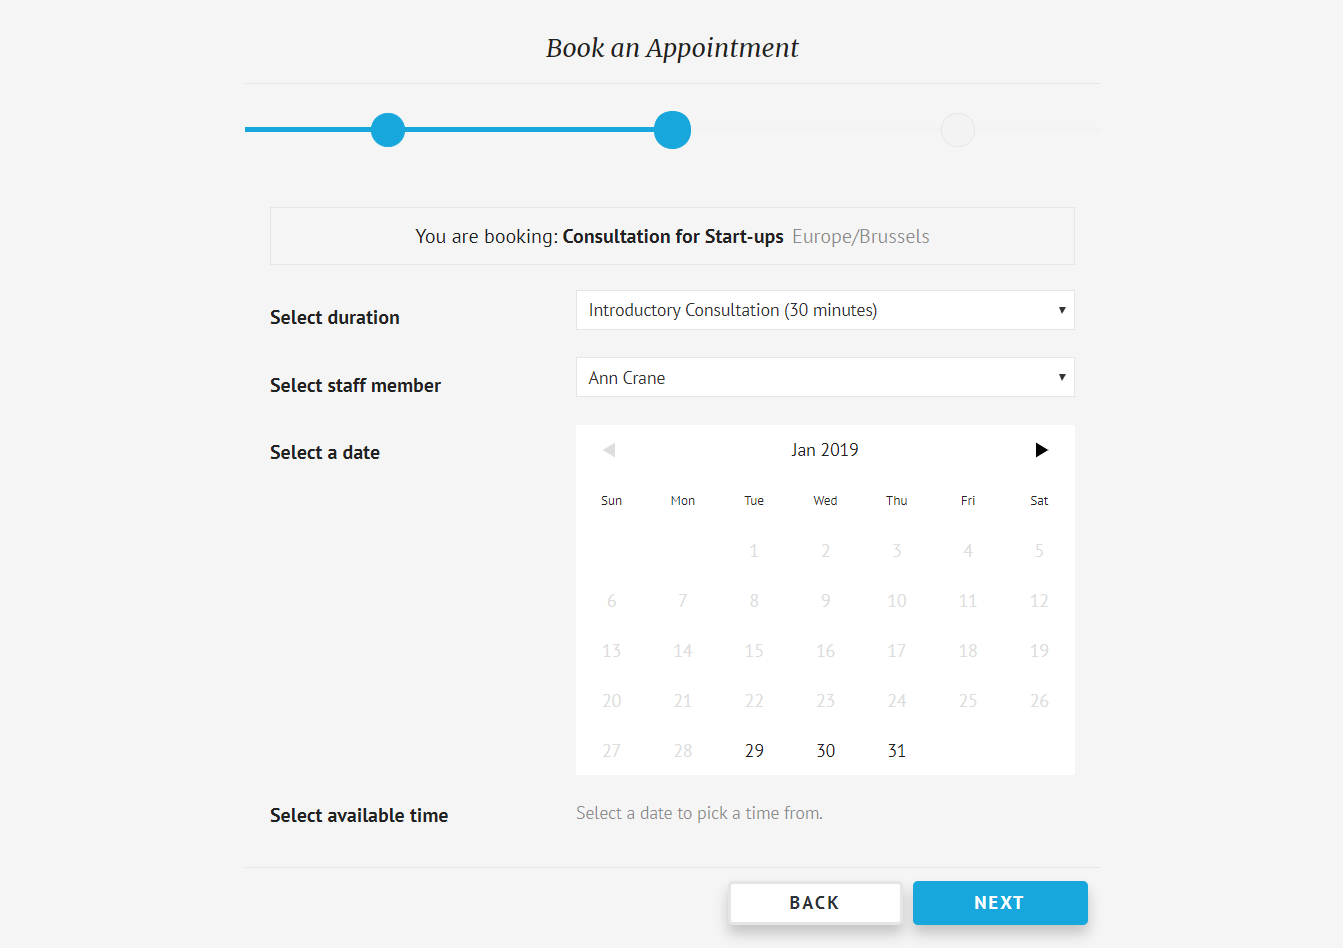 An example of an appointment booking form.